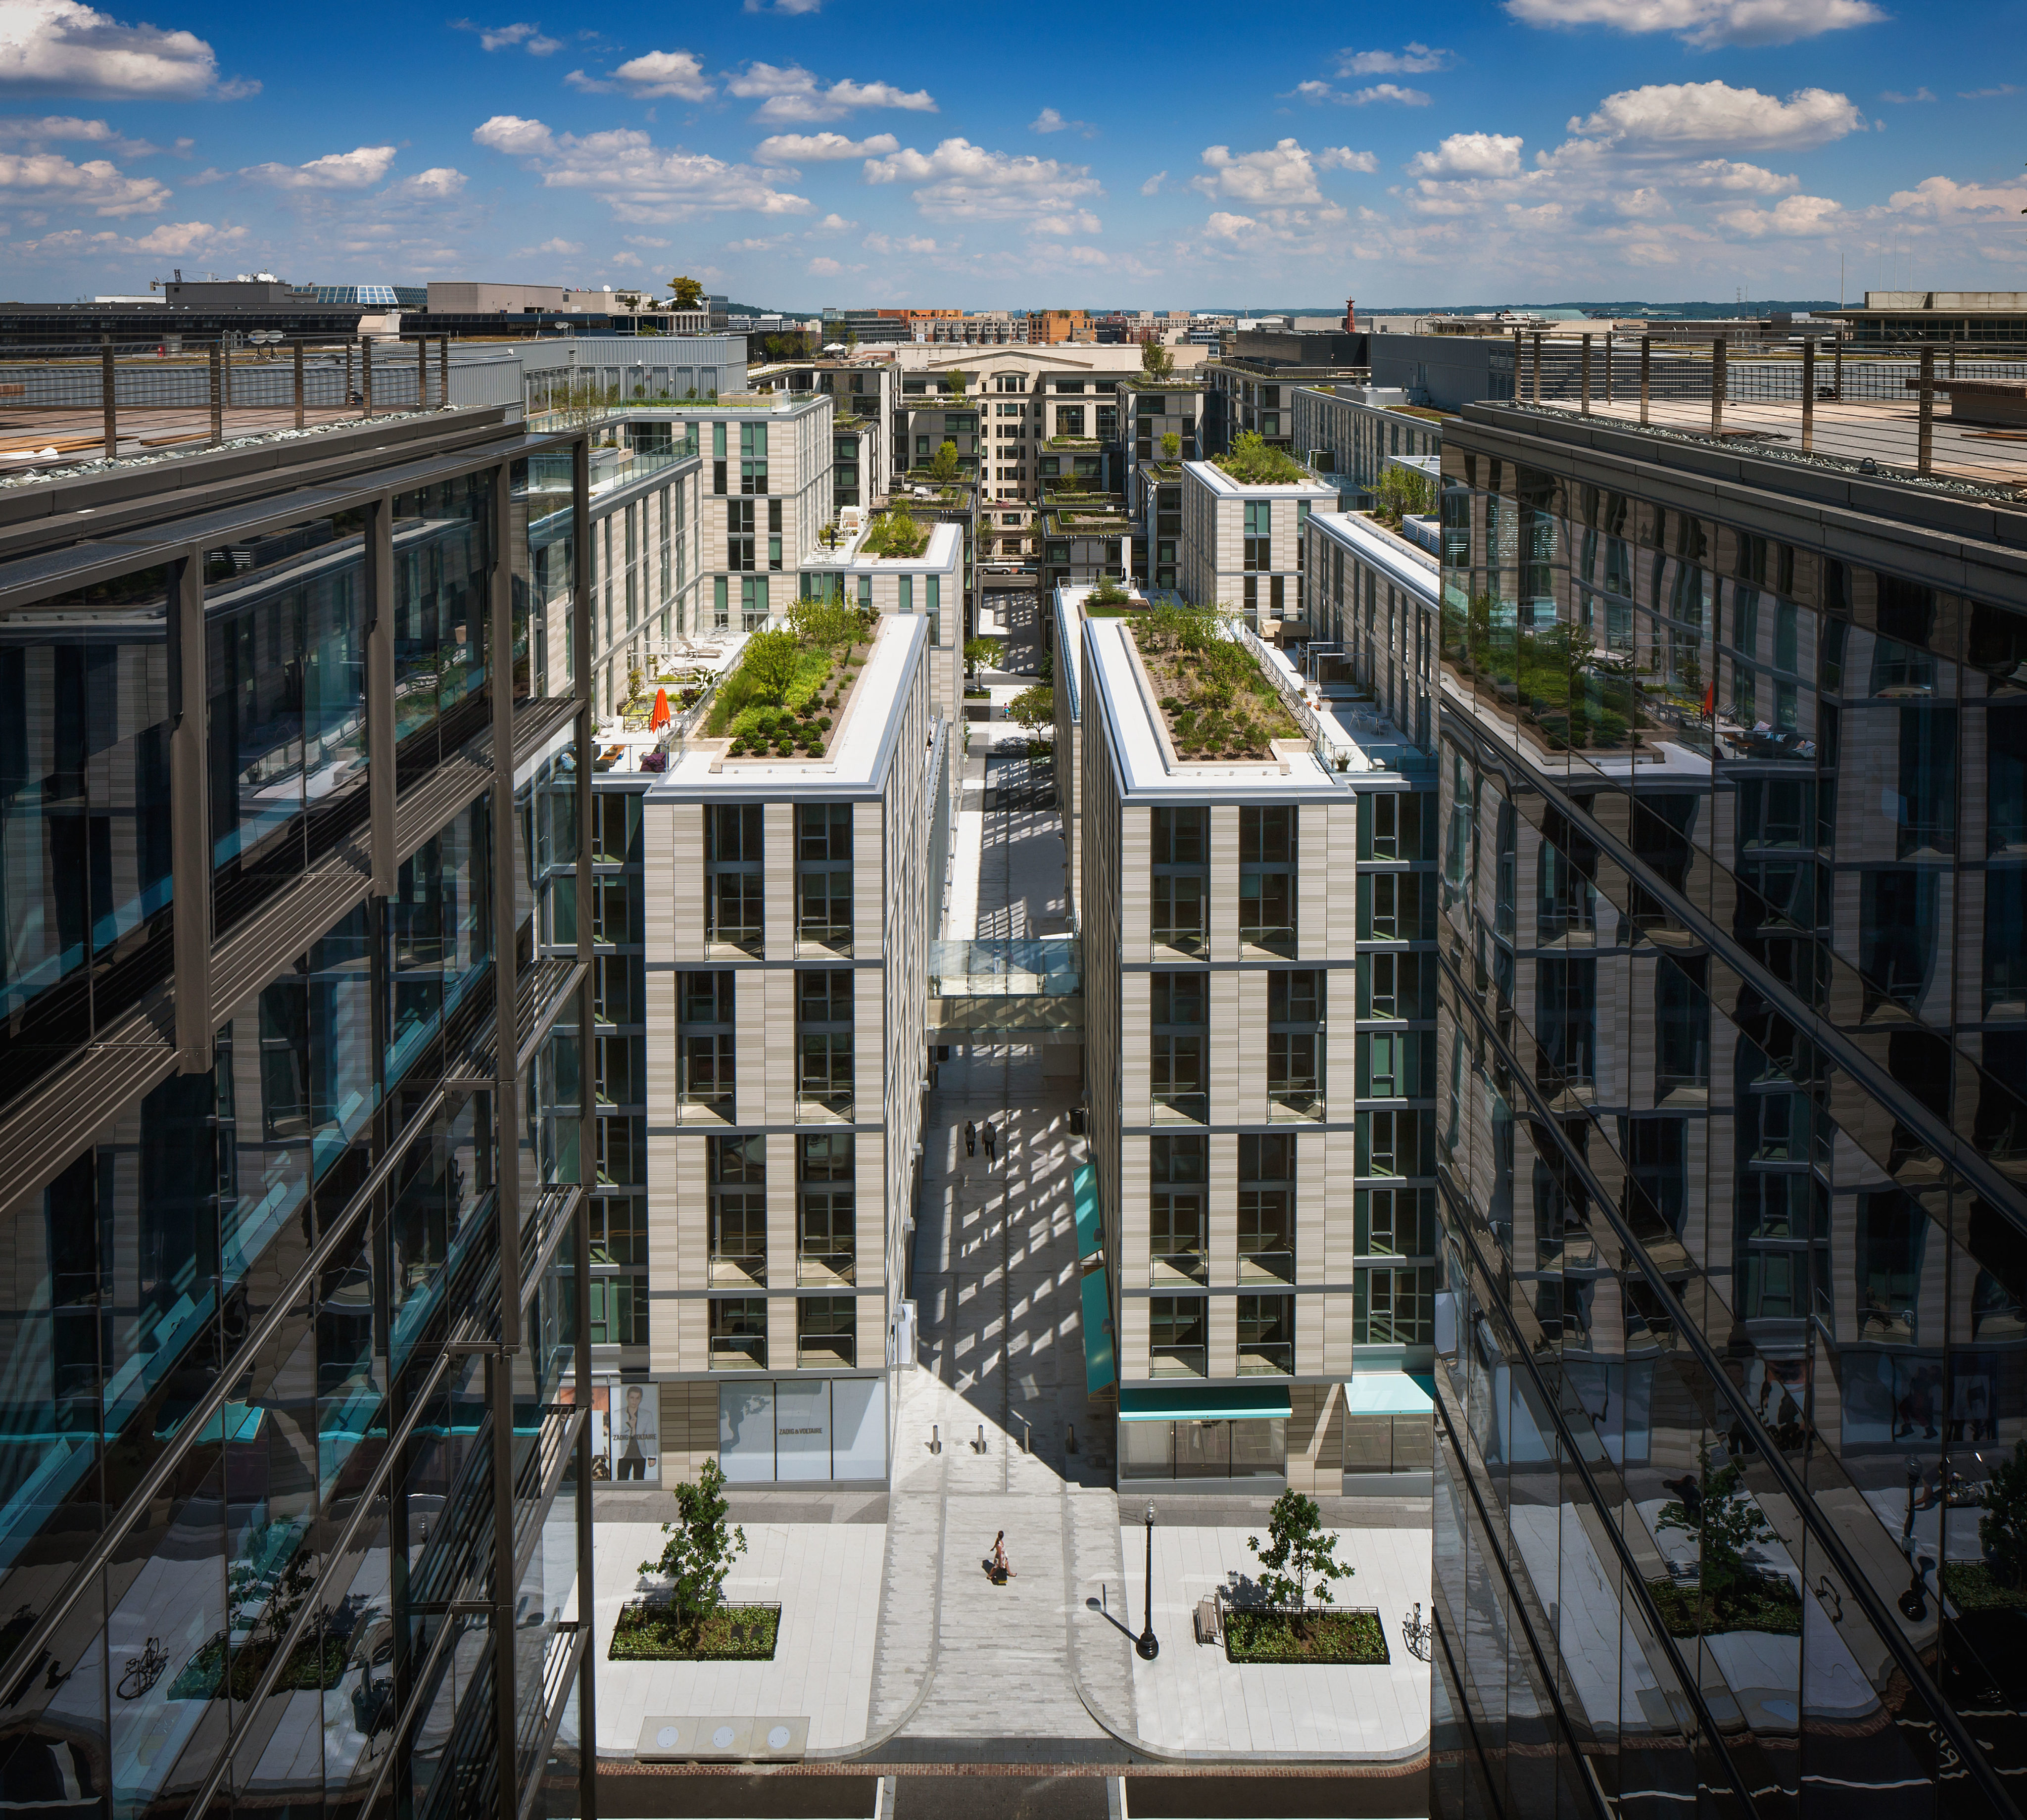 New Luxury Apartments In Dc: Your Guide To CityCenterDC: Where To Eat, Shop And Relax